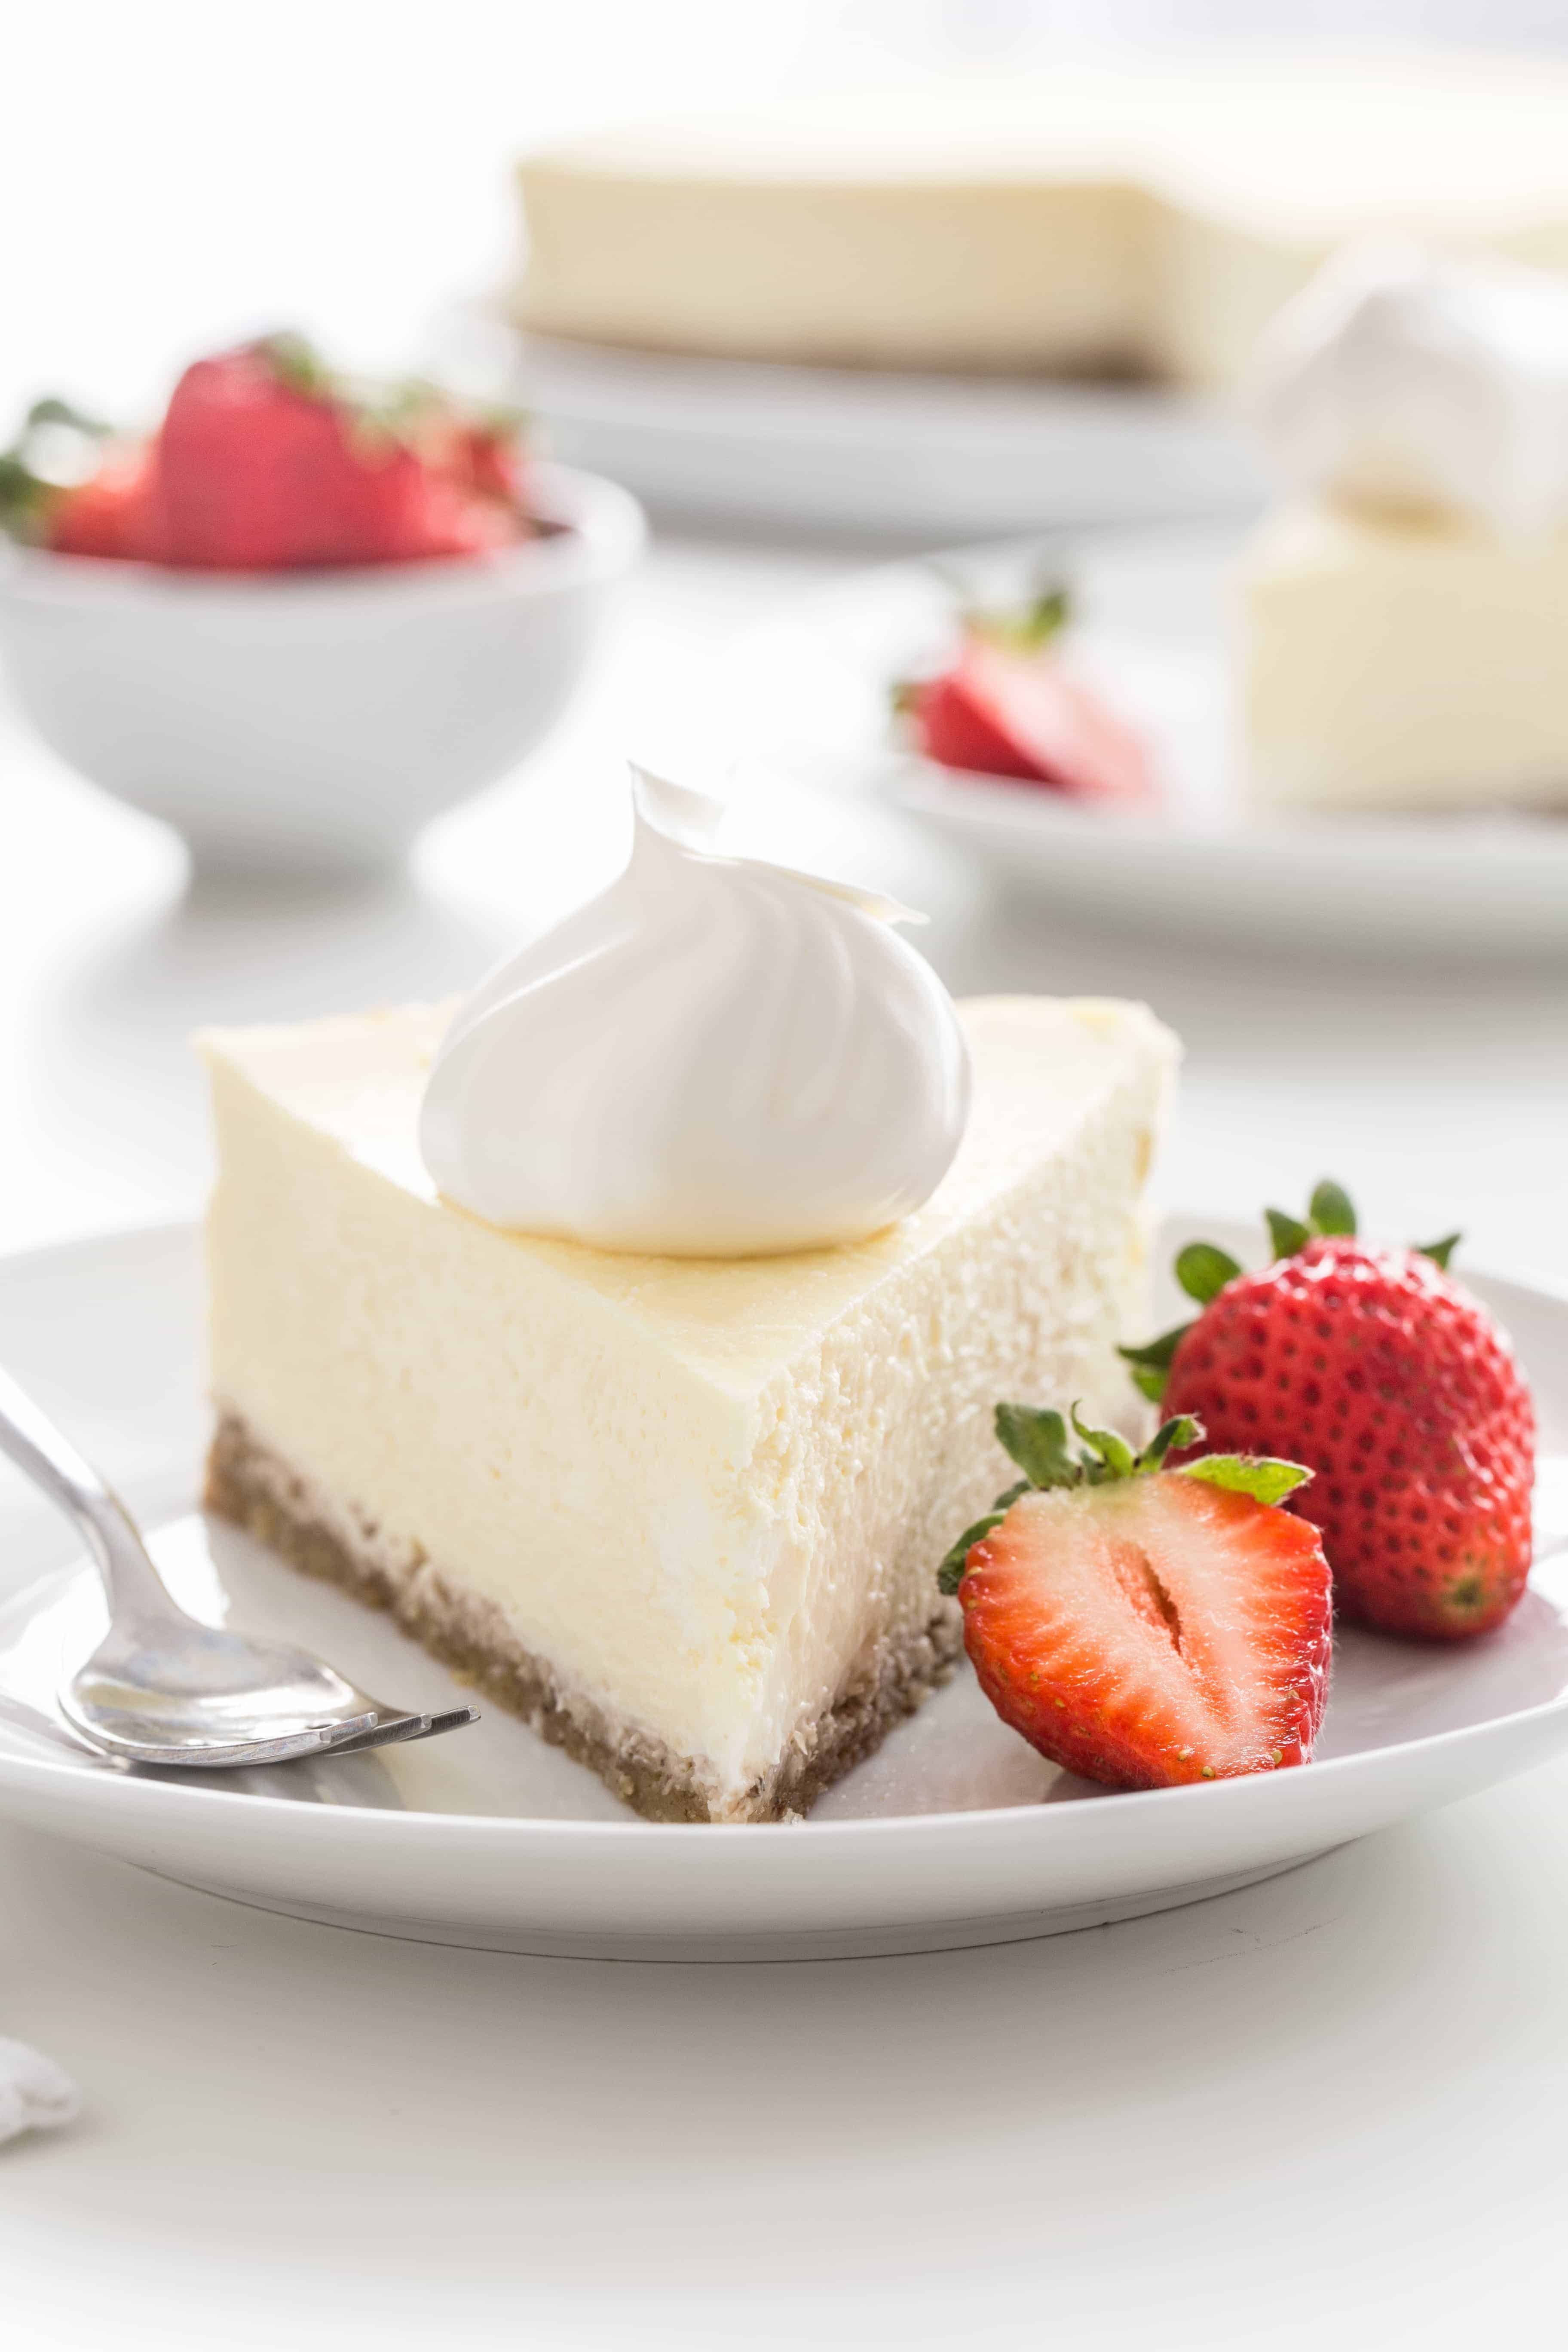 Low Carb Cheesecake has all the delicious flavor and creamy texture of traditional cheesecake without the added sugar. Perfect for any occasion!